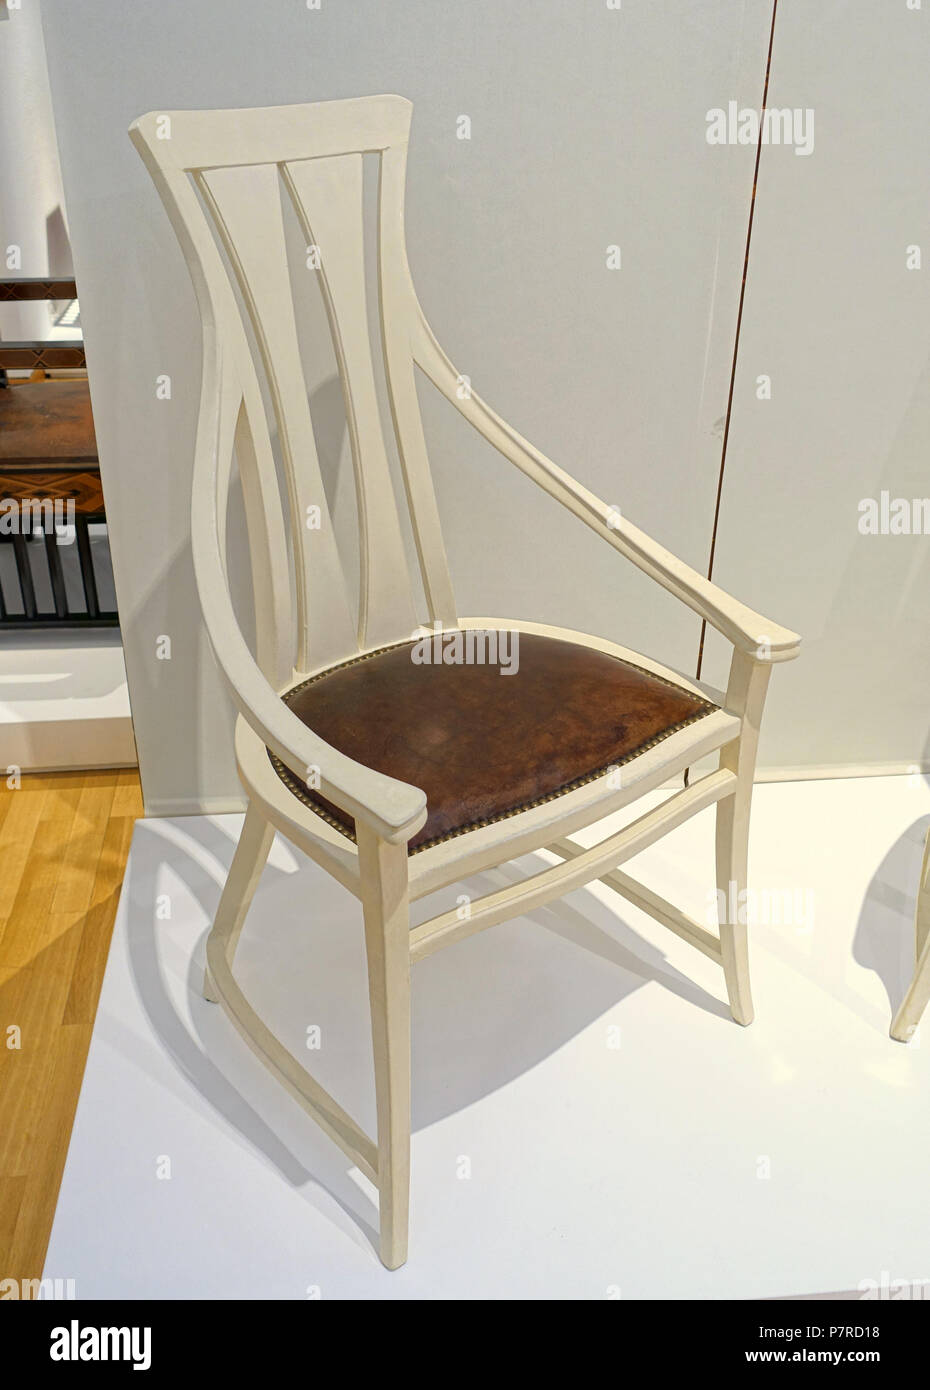 133 Dining room chair, Behrens House, designer Peter Behrens, 1900-1901, poplar, leather - Museum Künstlerkolonie Darmstadt - Mathildenhöhe - Darmstadt, Germany - DSC06258 - Stock Image